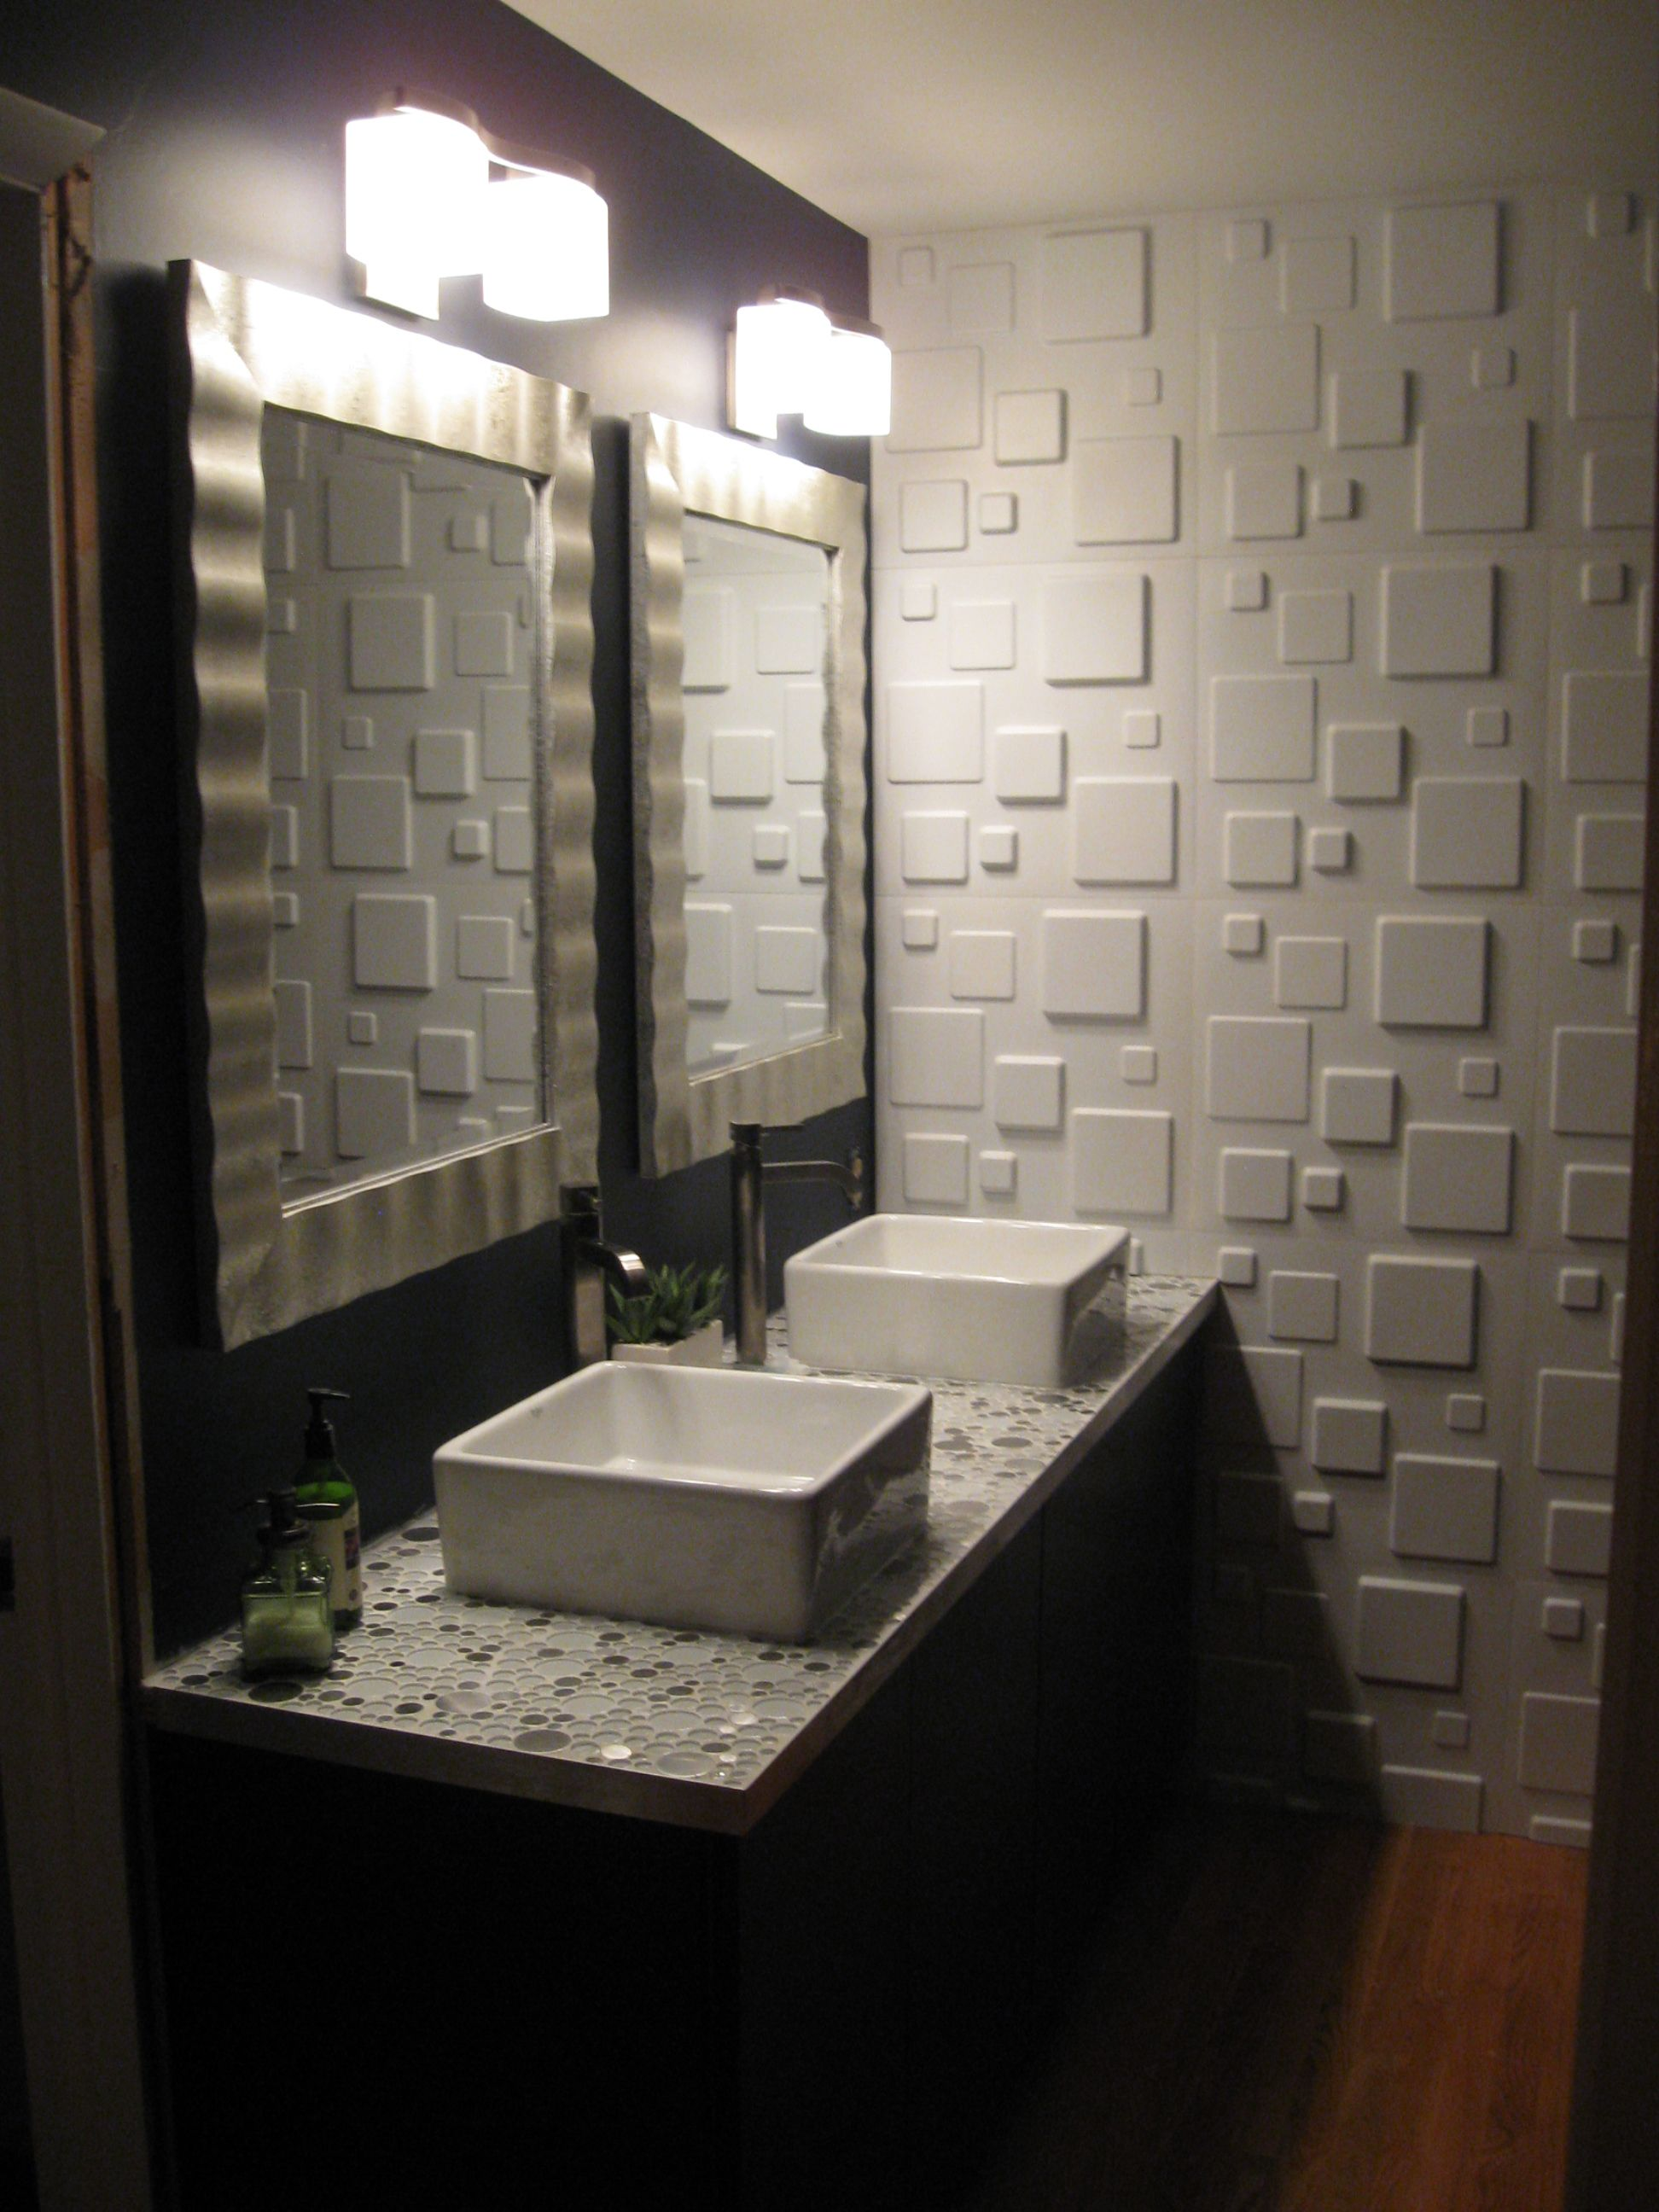 Decorative 3d wall panels gallery 3d wall panels 3d for 3d bathroom decor